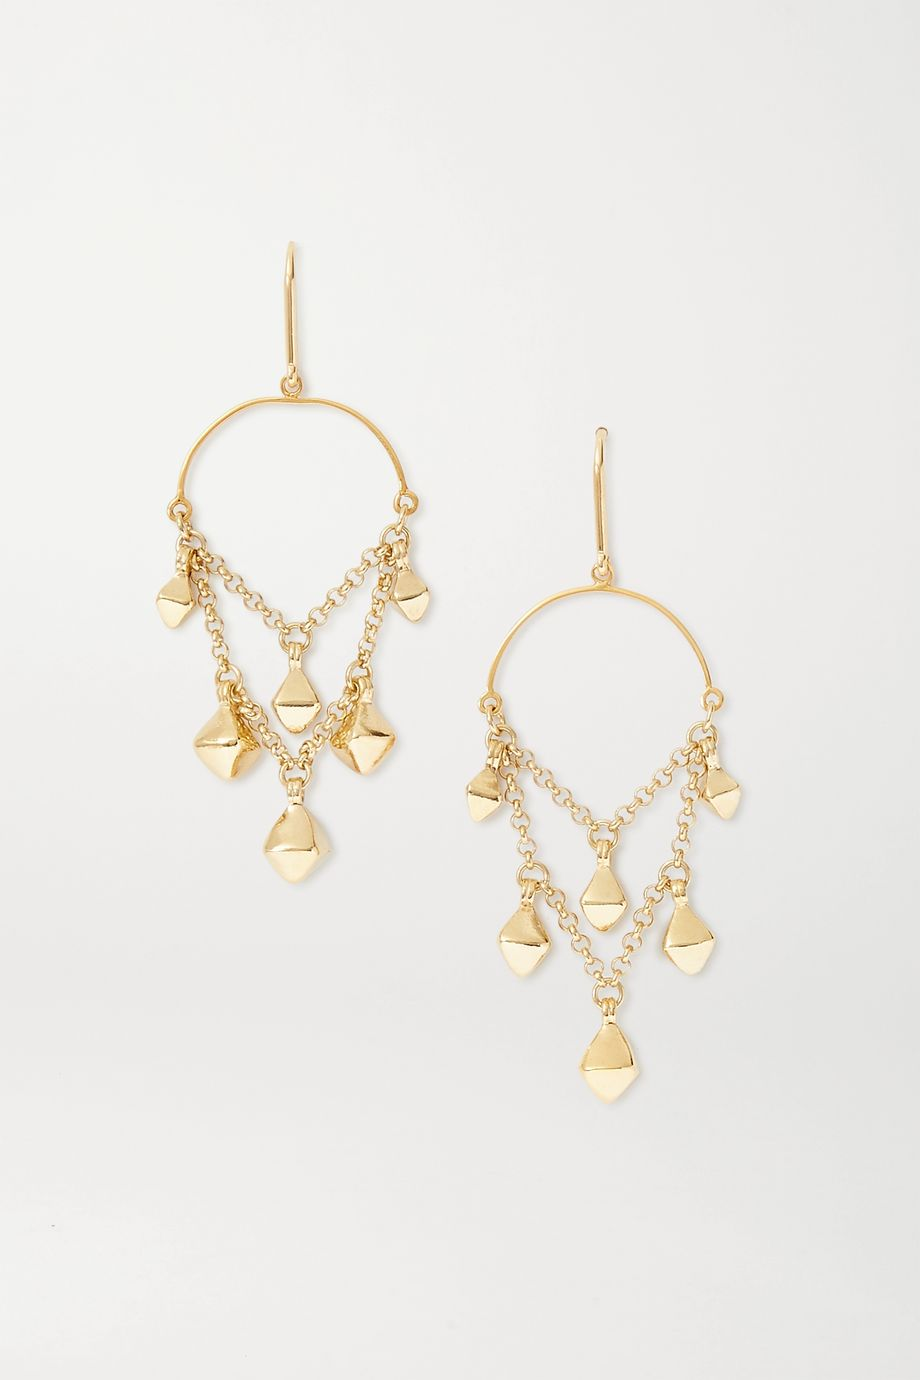 Isabel Marant Tanganyika gold-tone earrings